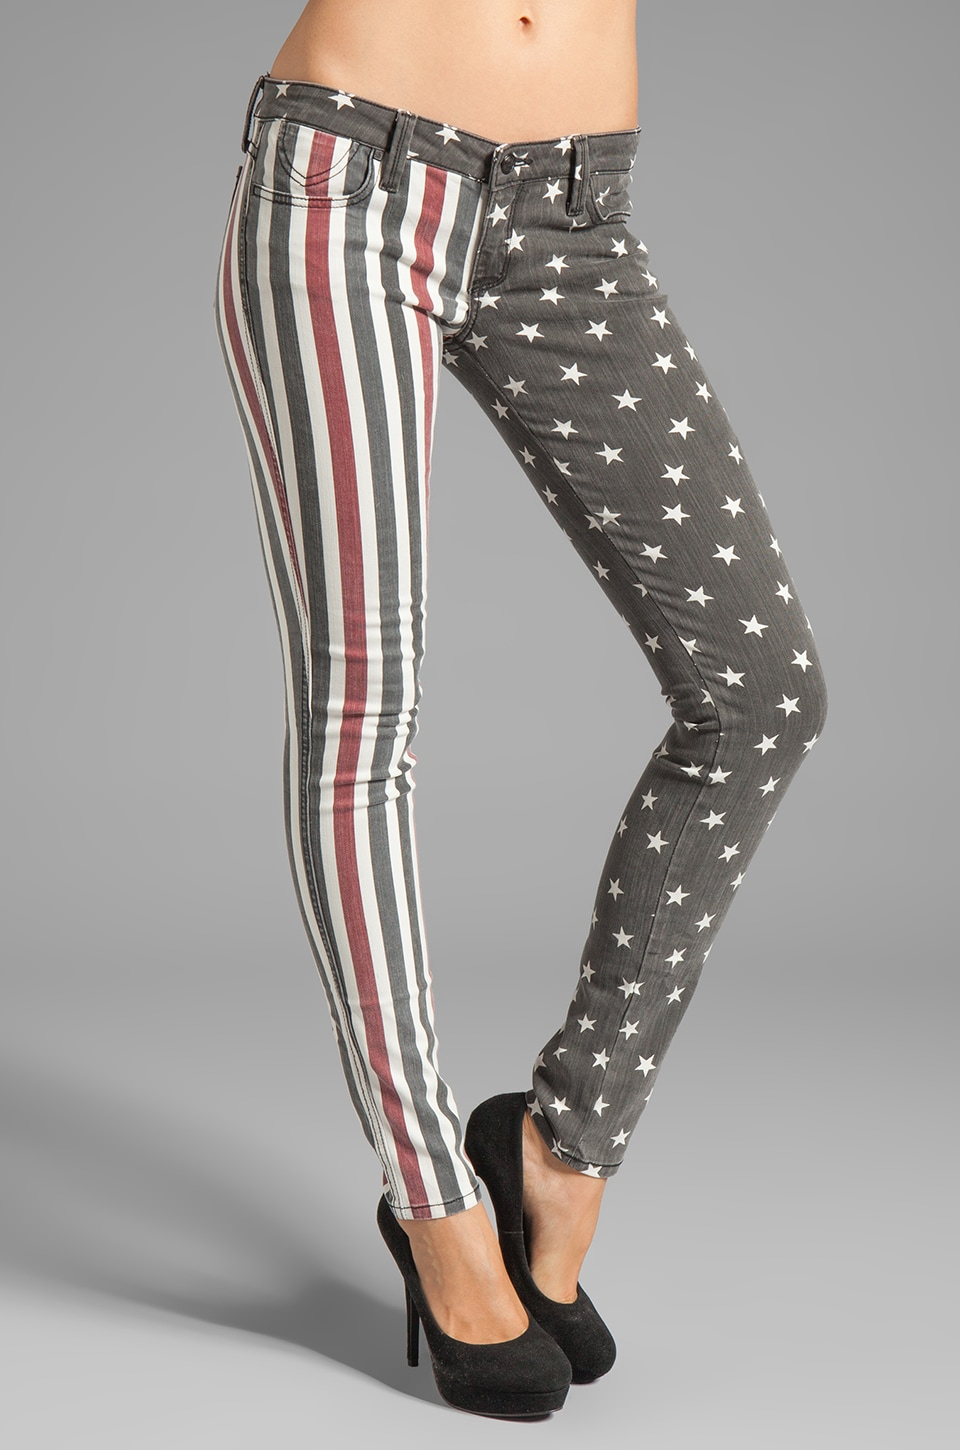 Frankie B. Jeans Stars and Stripes Skinny in Black/Red